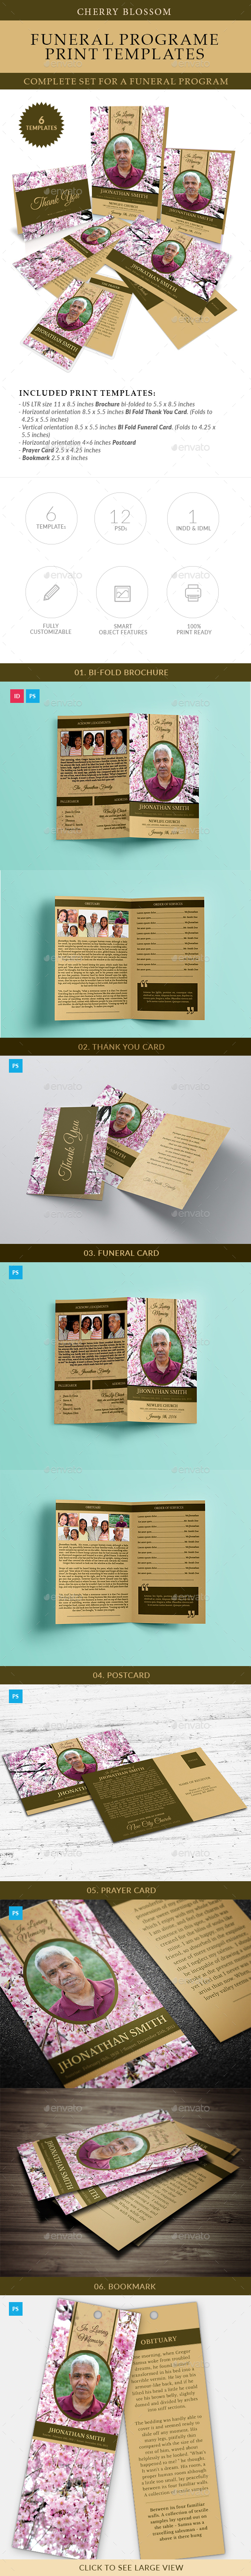 Cherry Blossom Funeral Print Templates Combo Set - Cards & Invites Print Templates